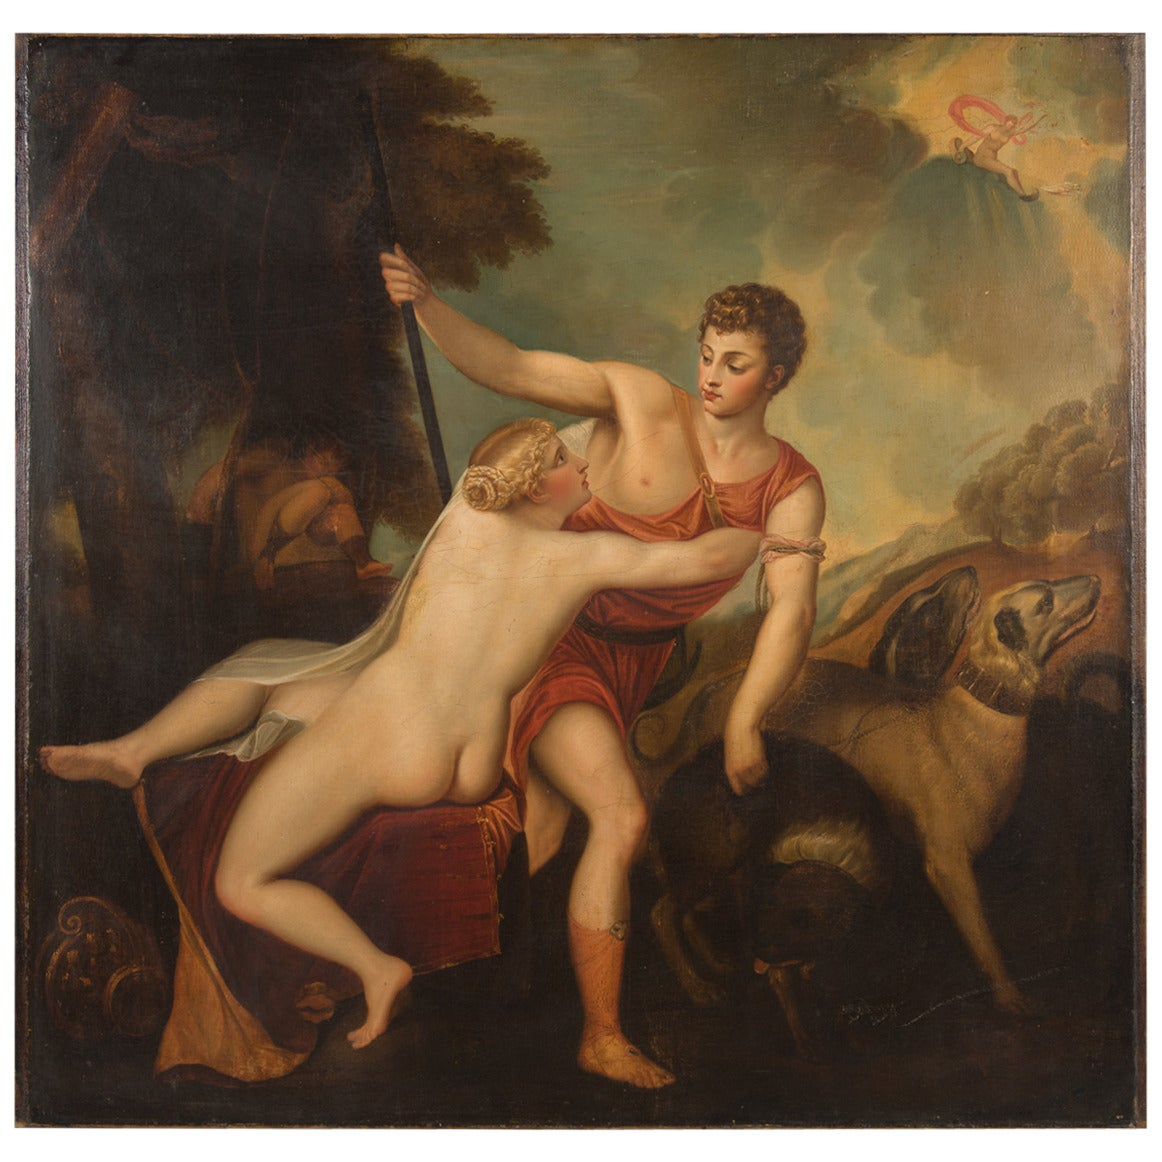 A Continental Mythological Antique Oil on Canvas of Aphrodite and Adonis